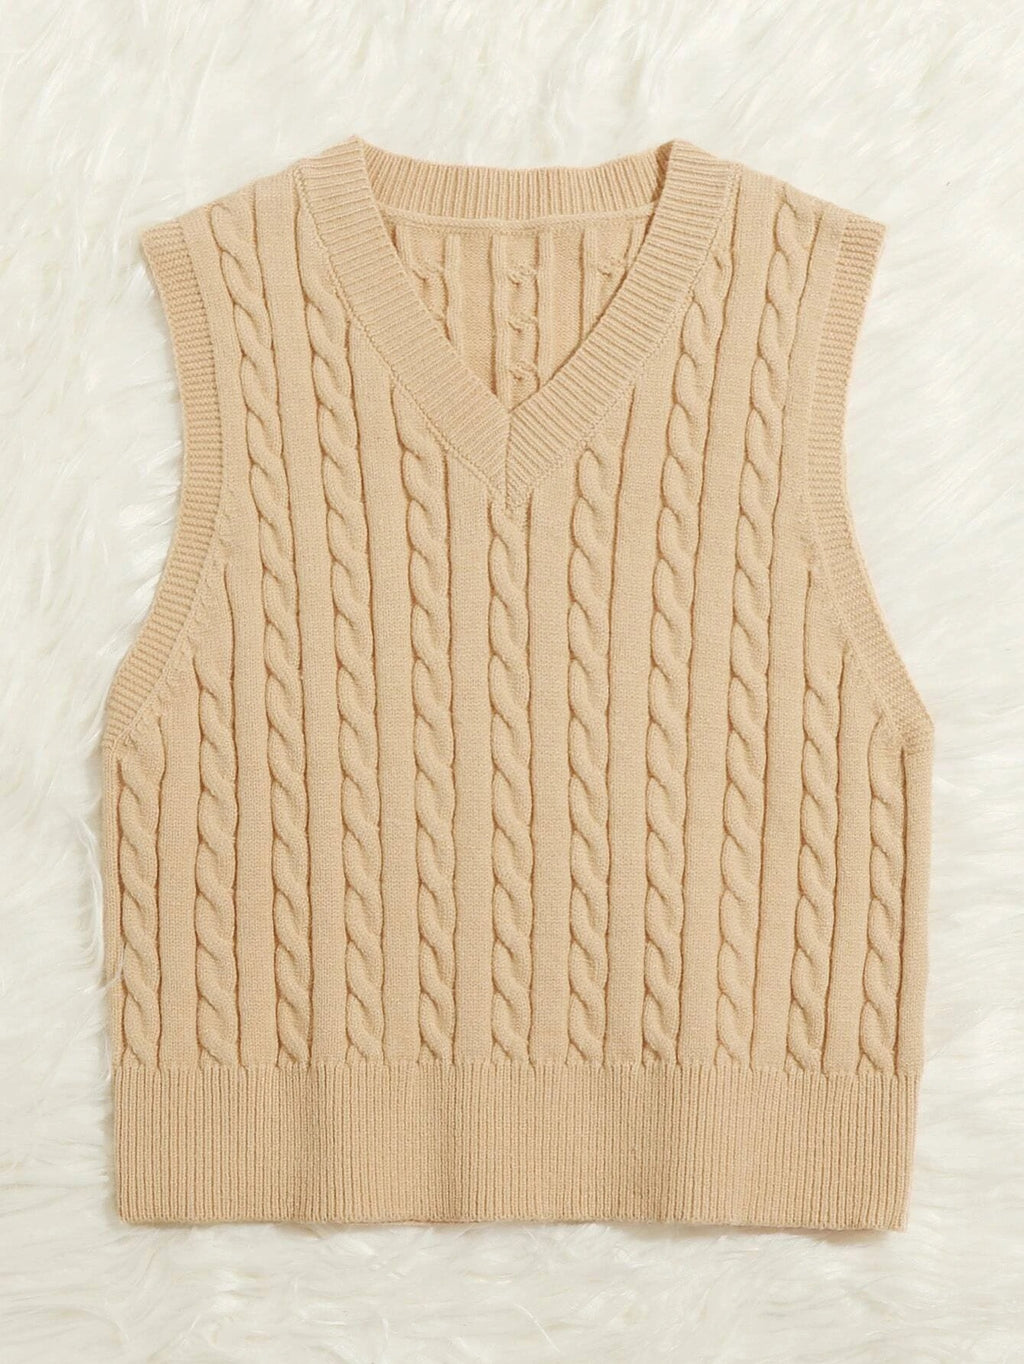 Spring and Summer Knitted Vest Pullover V-neck Sleeveless Sweater